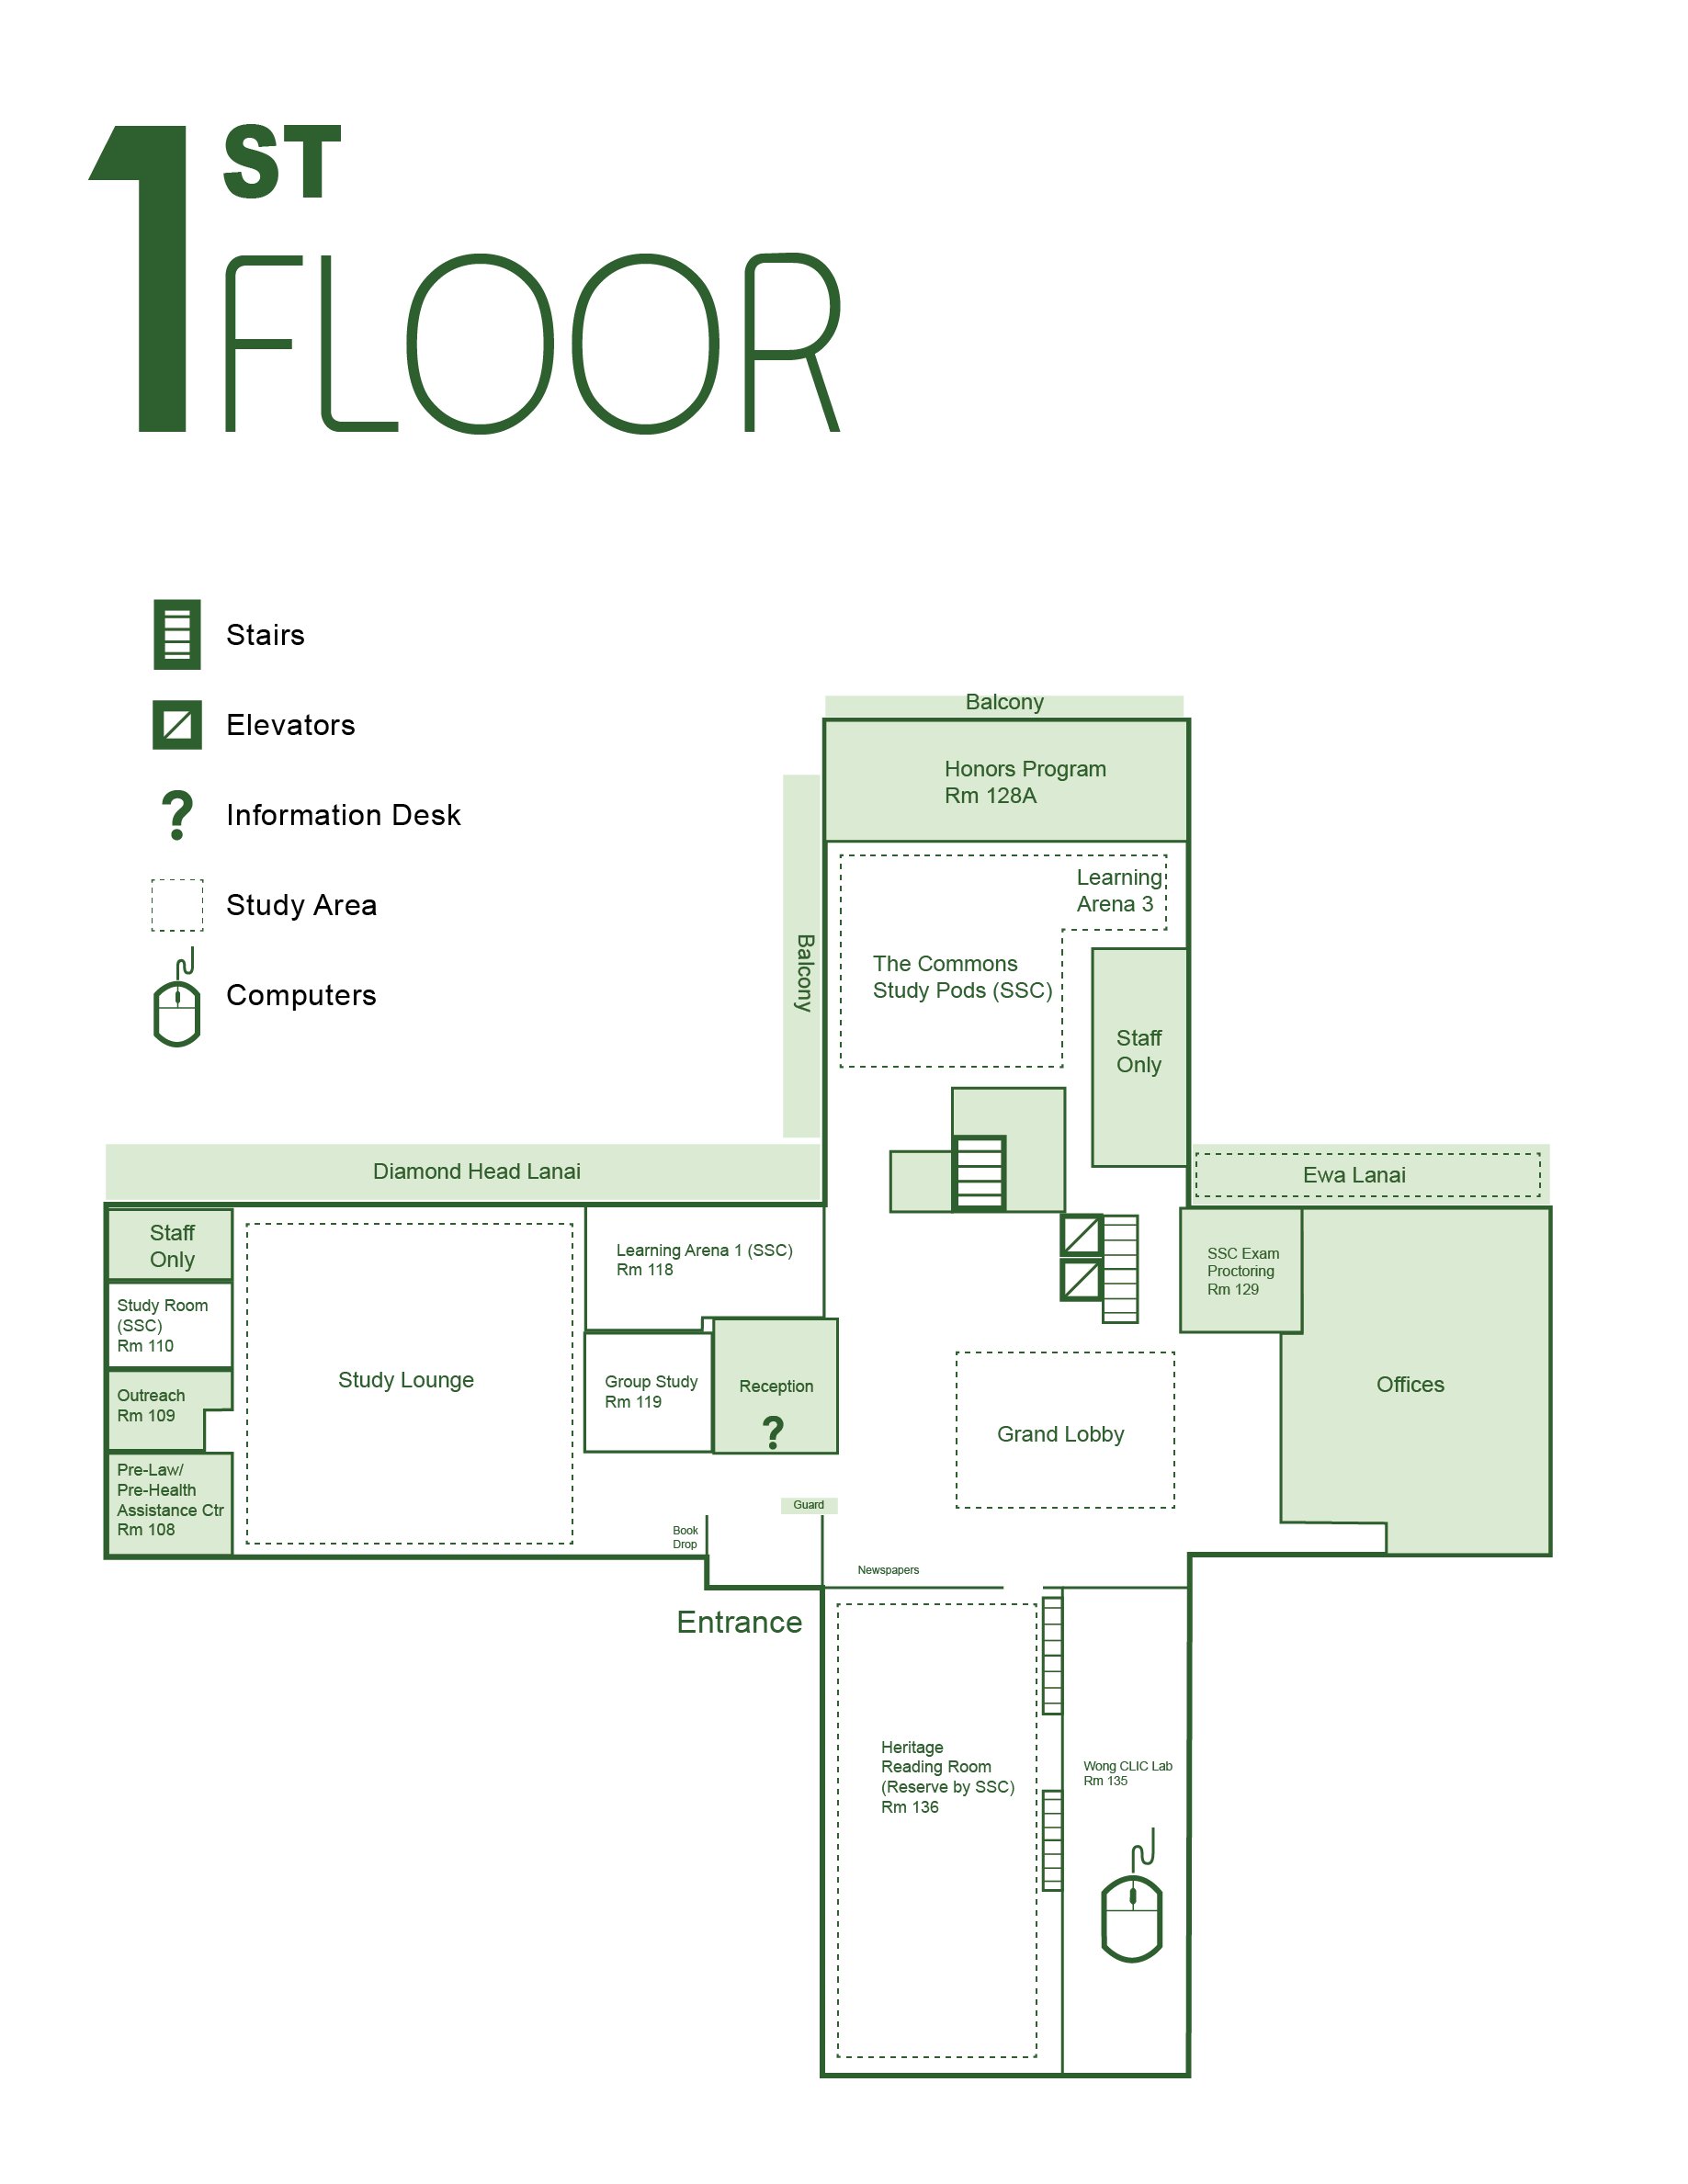 Sinclair first floor map